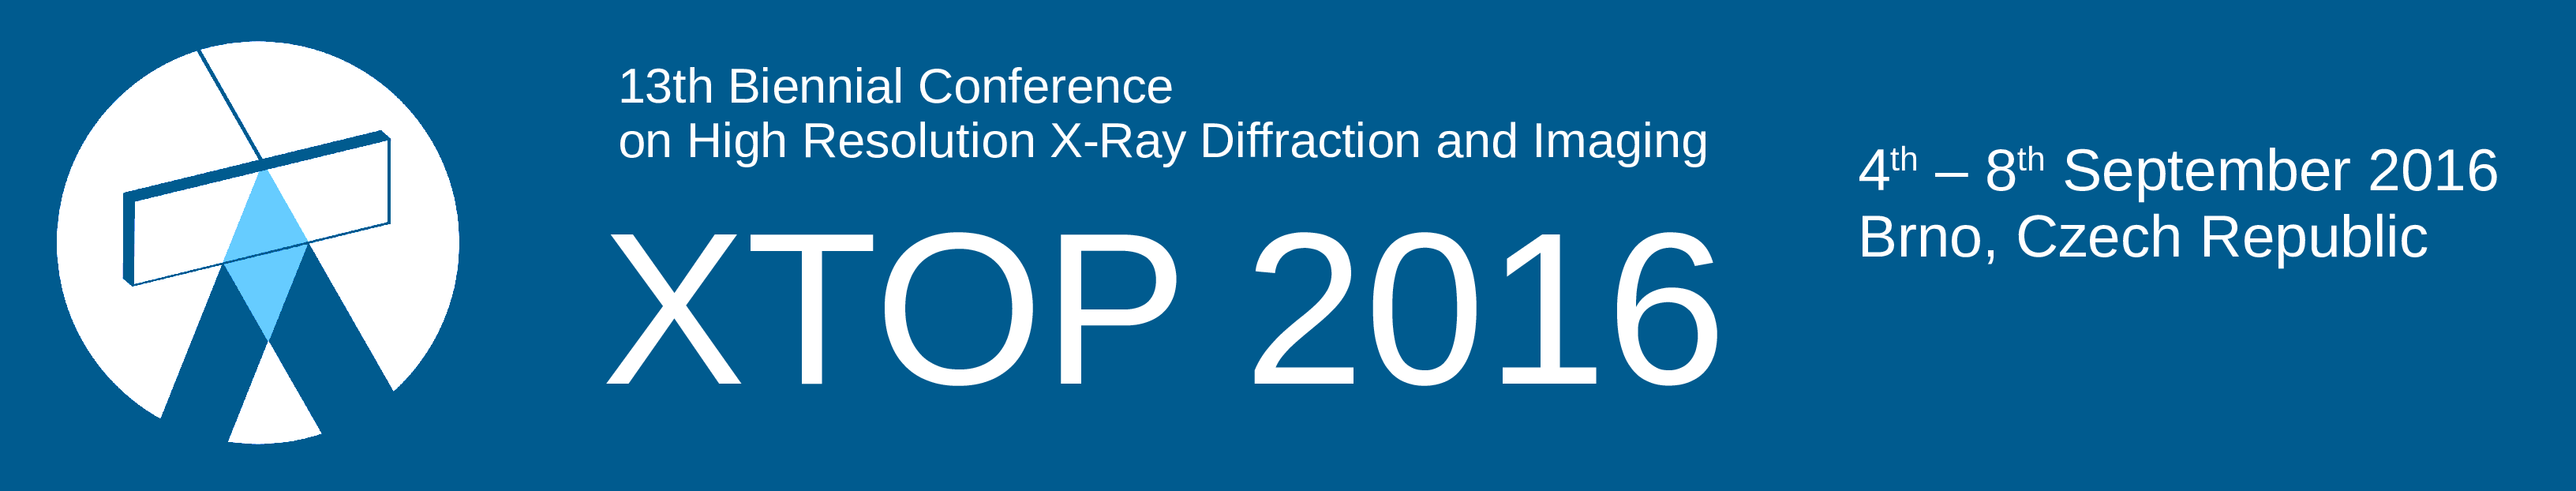 13th Biennial Conference on High Resolution X-Ray Diffraction and Imaging